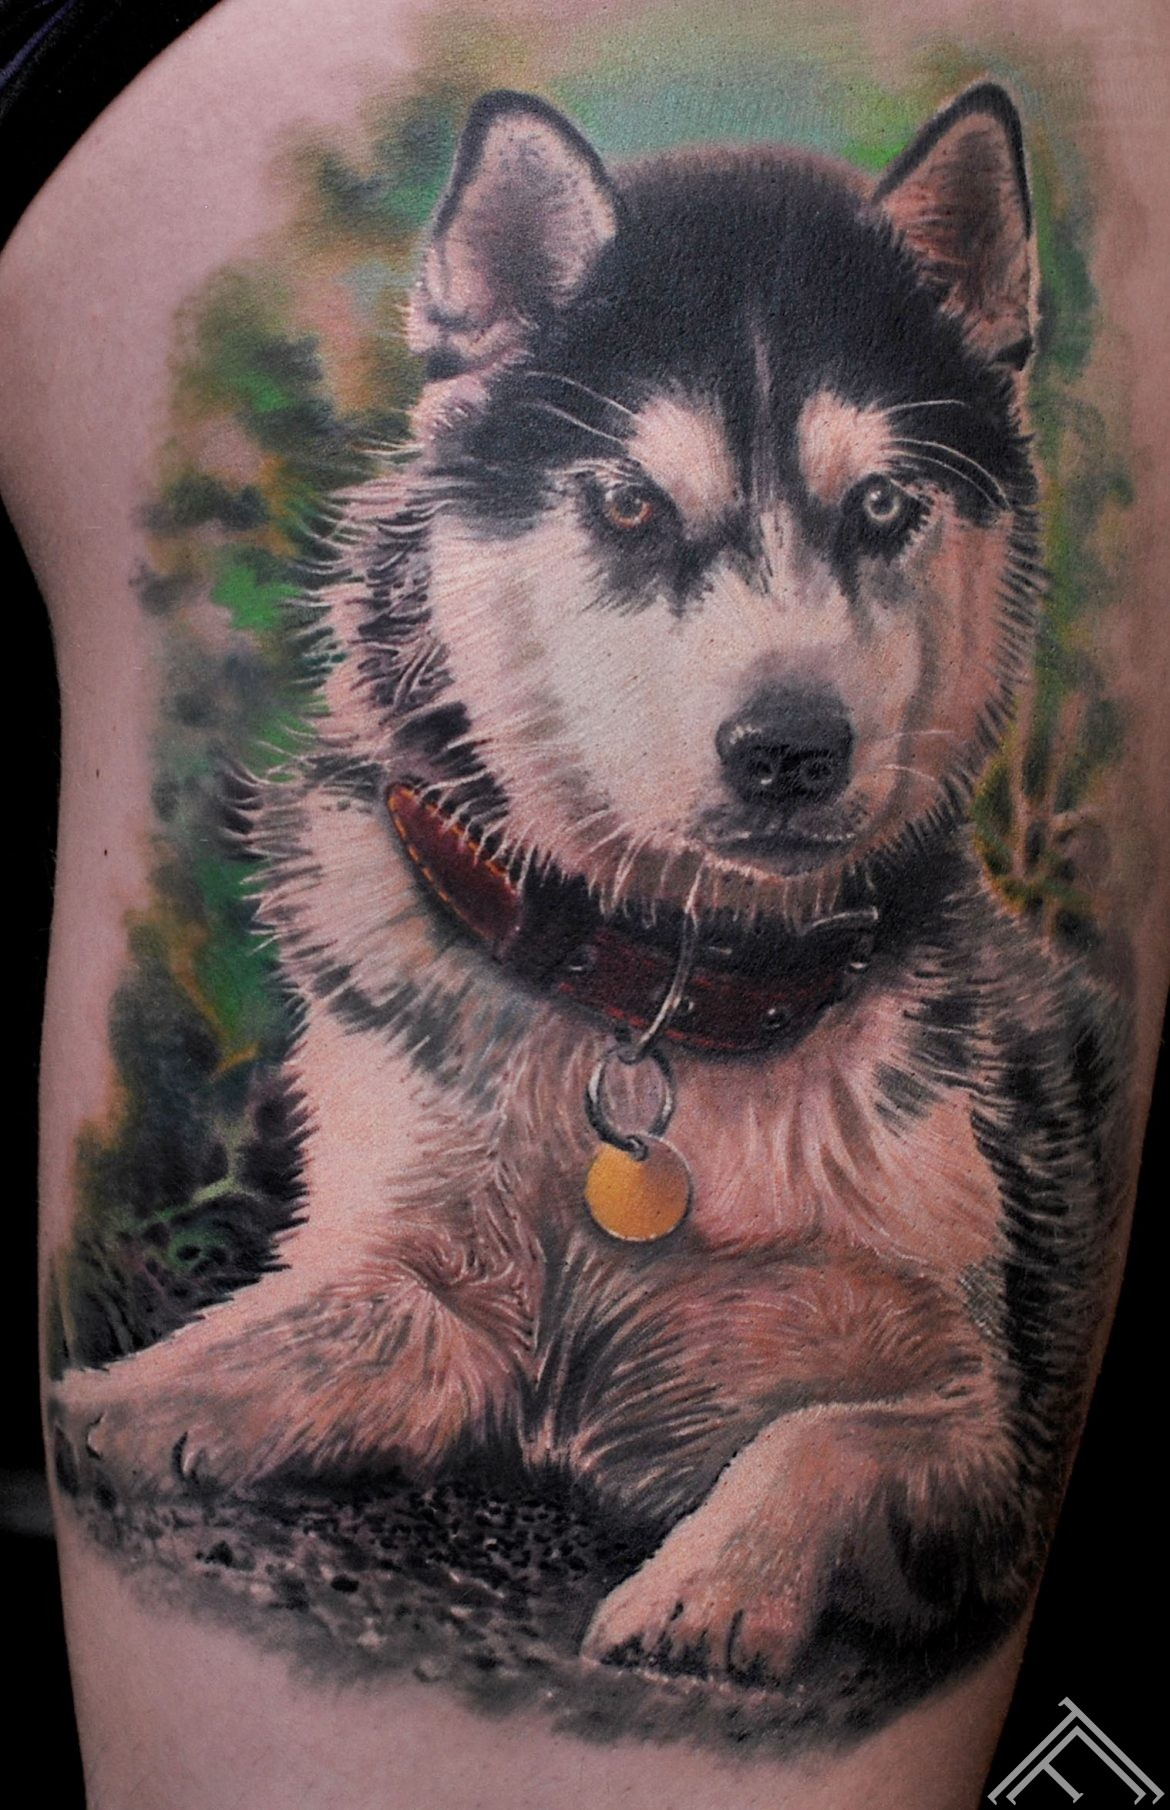 tattoo-marispavlo-tattoofrequency-dog-haskey